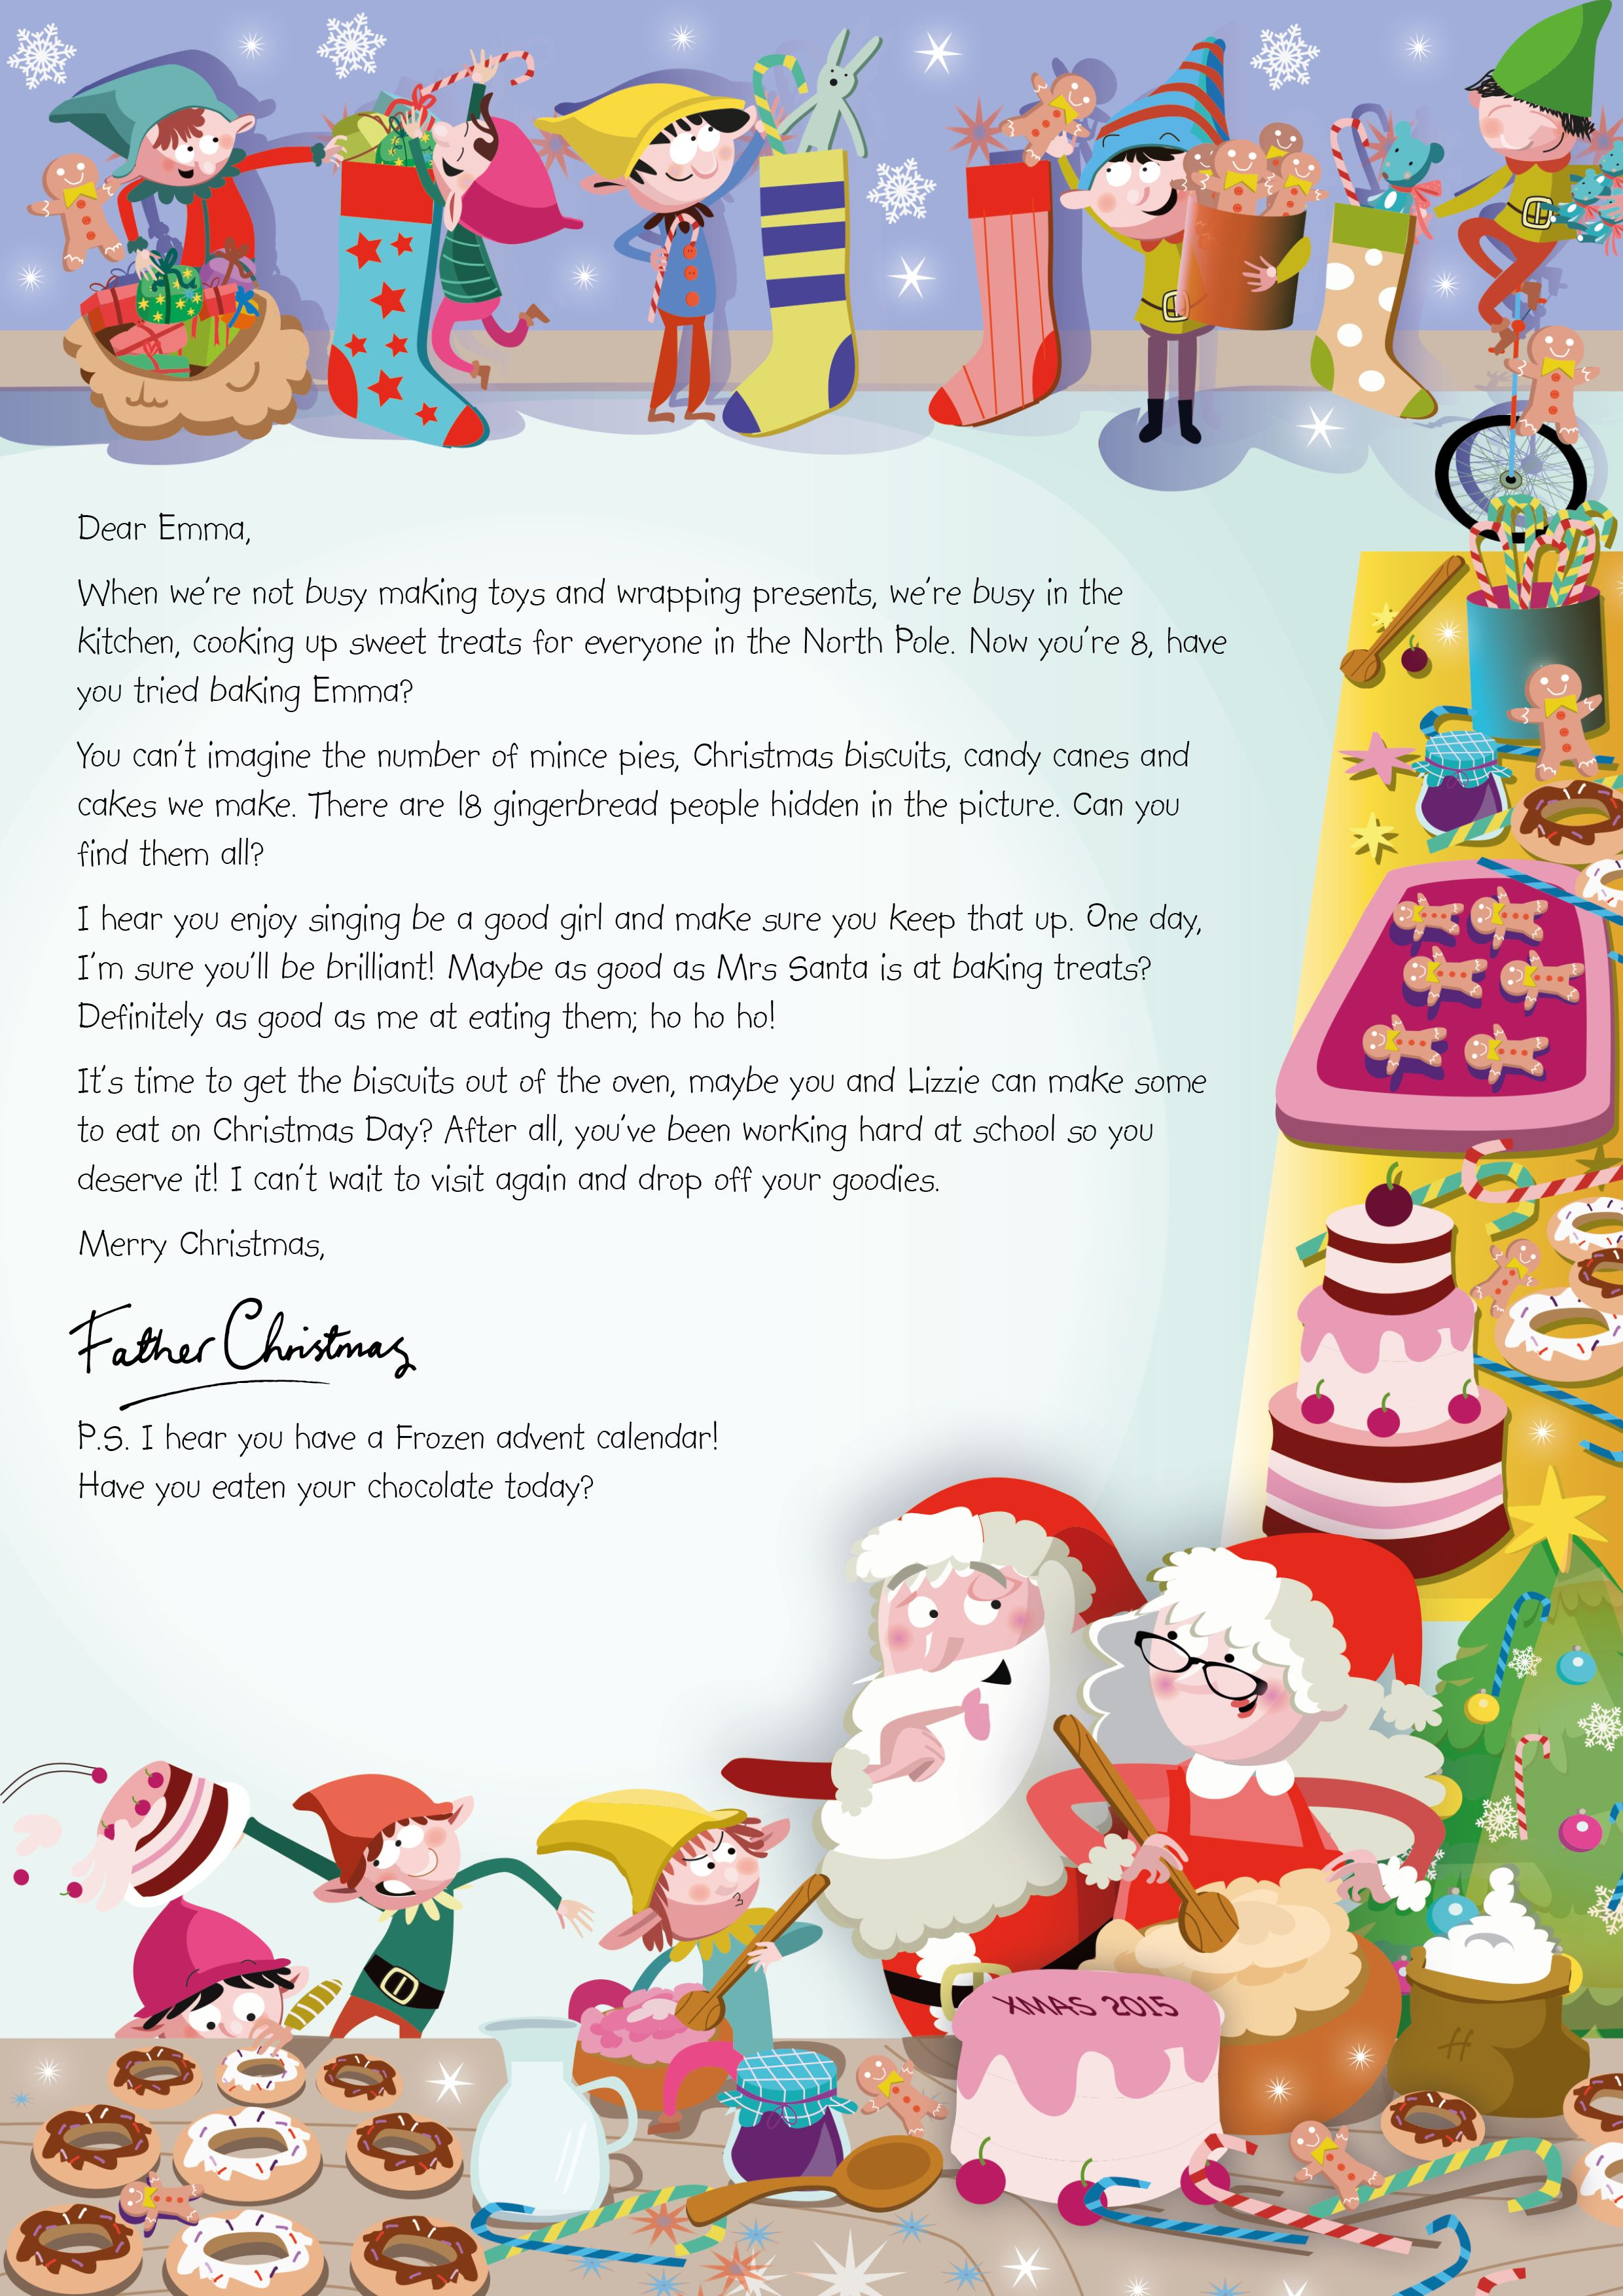 Nspcc letter from santa christmas baking 2015 httpsnspcc nspcc letter from santa christmas baking 2015 httpsnspccwhat you can domake a donationletter from santa spiritdancerdesigns Gallery